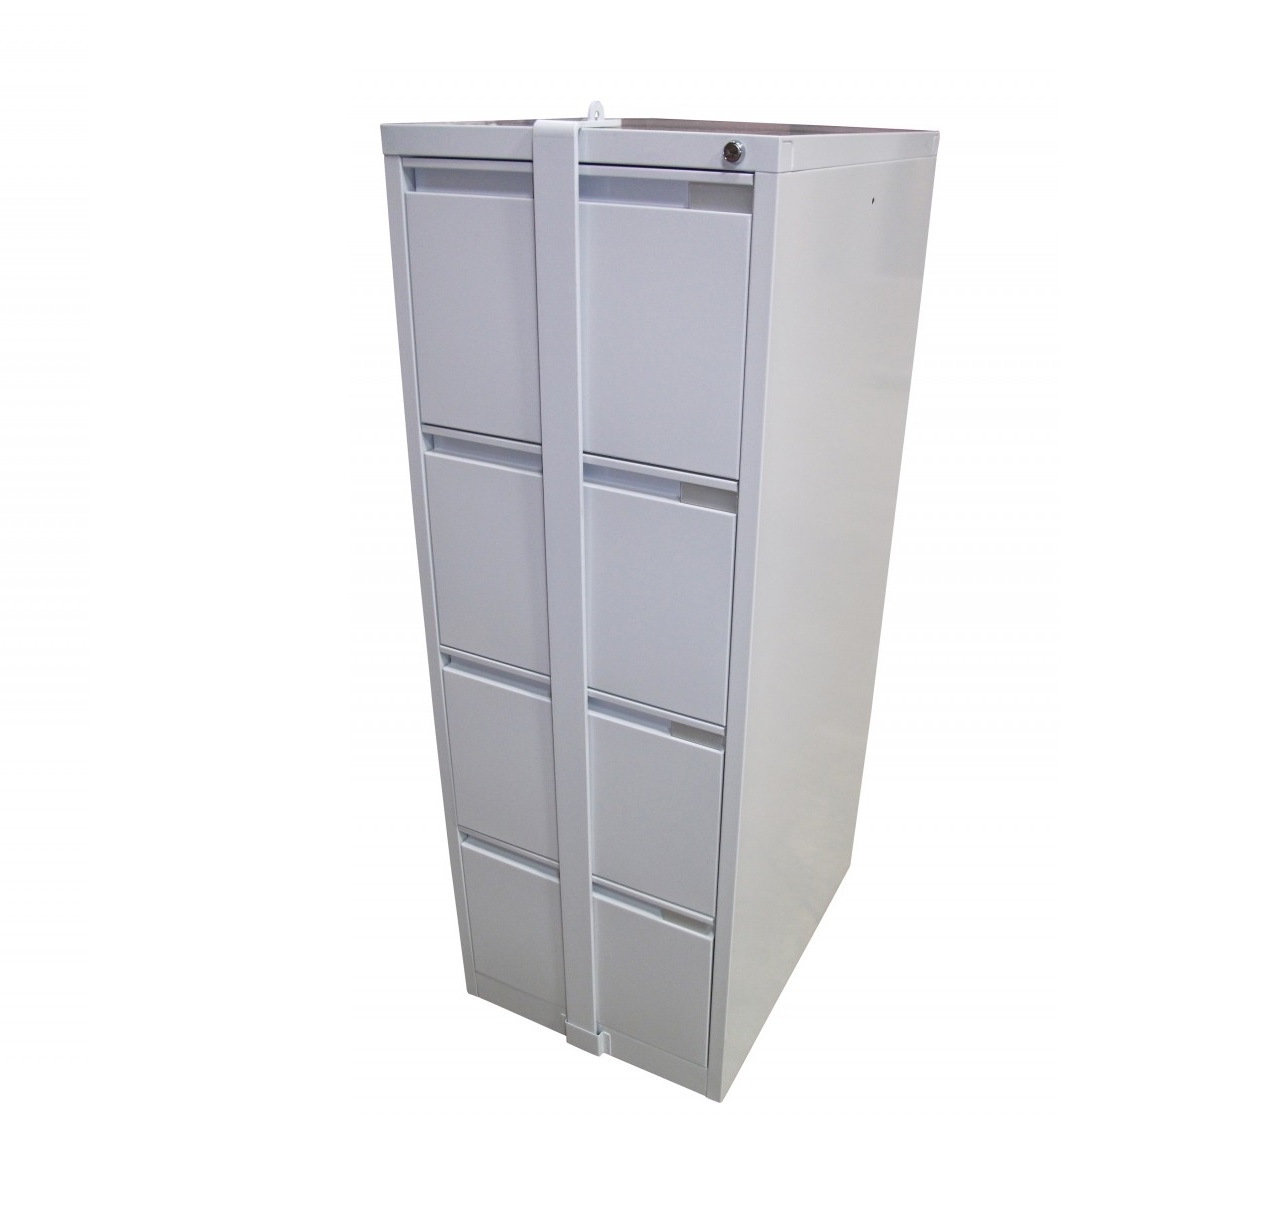 """Be the first to review """"4 Drawer locking bar filing cabinets"""